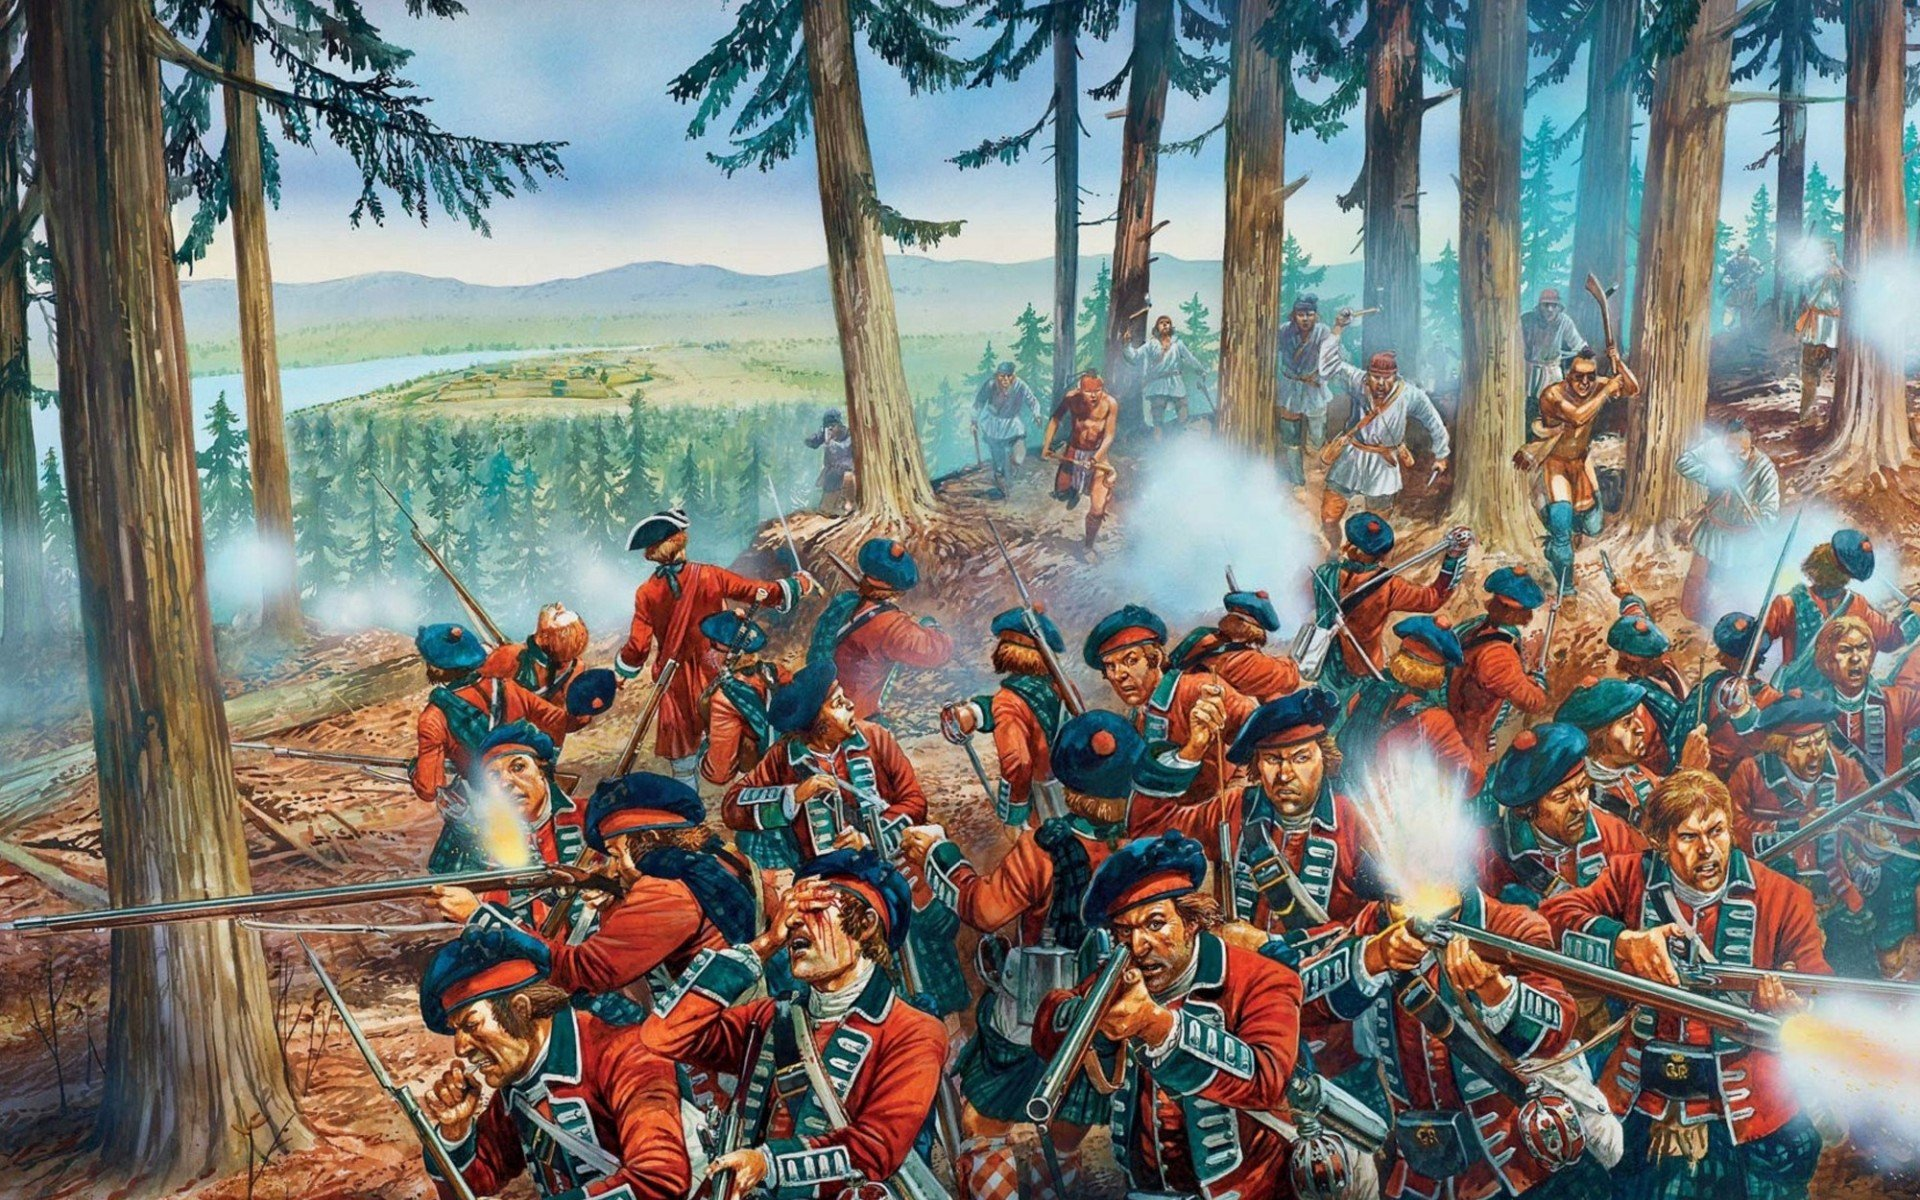 french and indian war provoked the american The french and indian war was the last of four major colonial wars between the british, the french, and their native american allies for control of north america.